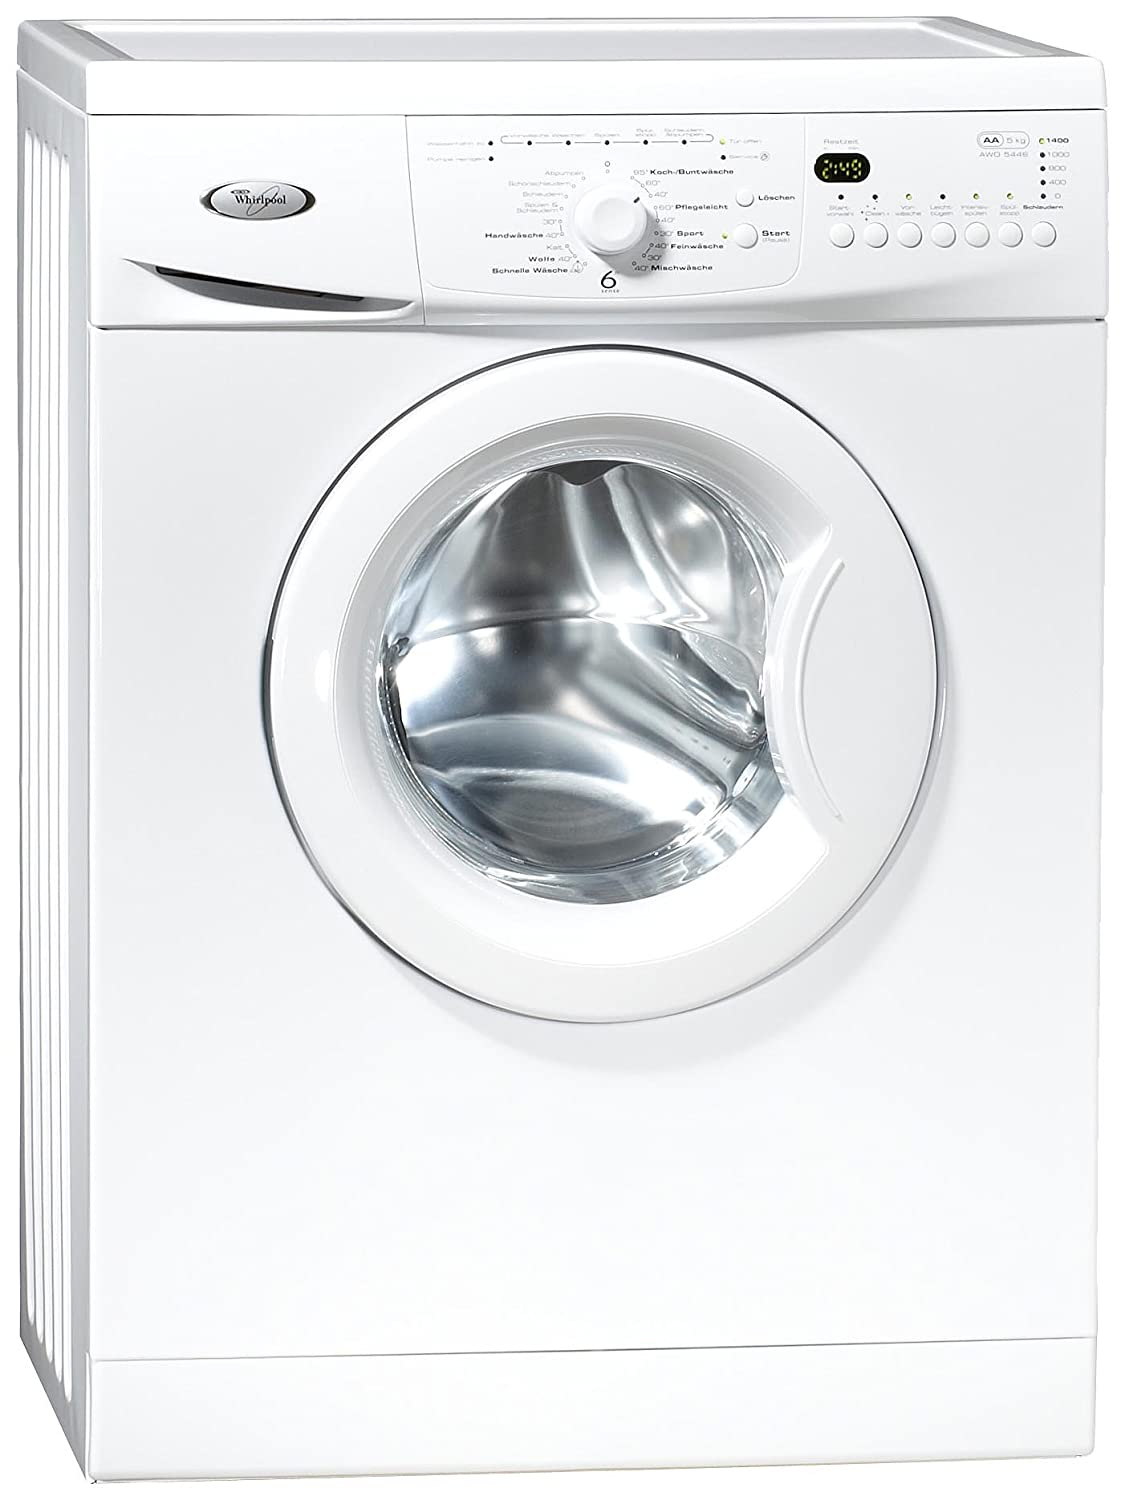 Whirlpool AWO 5446 Independiente Carga frontal 5kg 1400RPM A+ ...